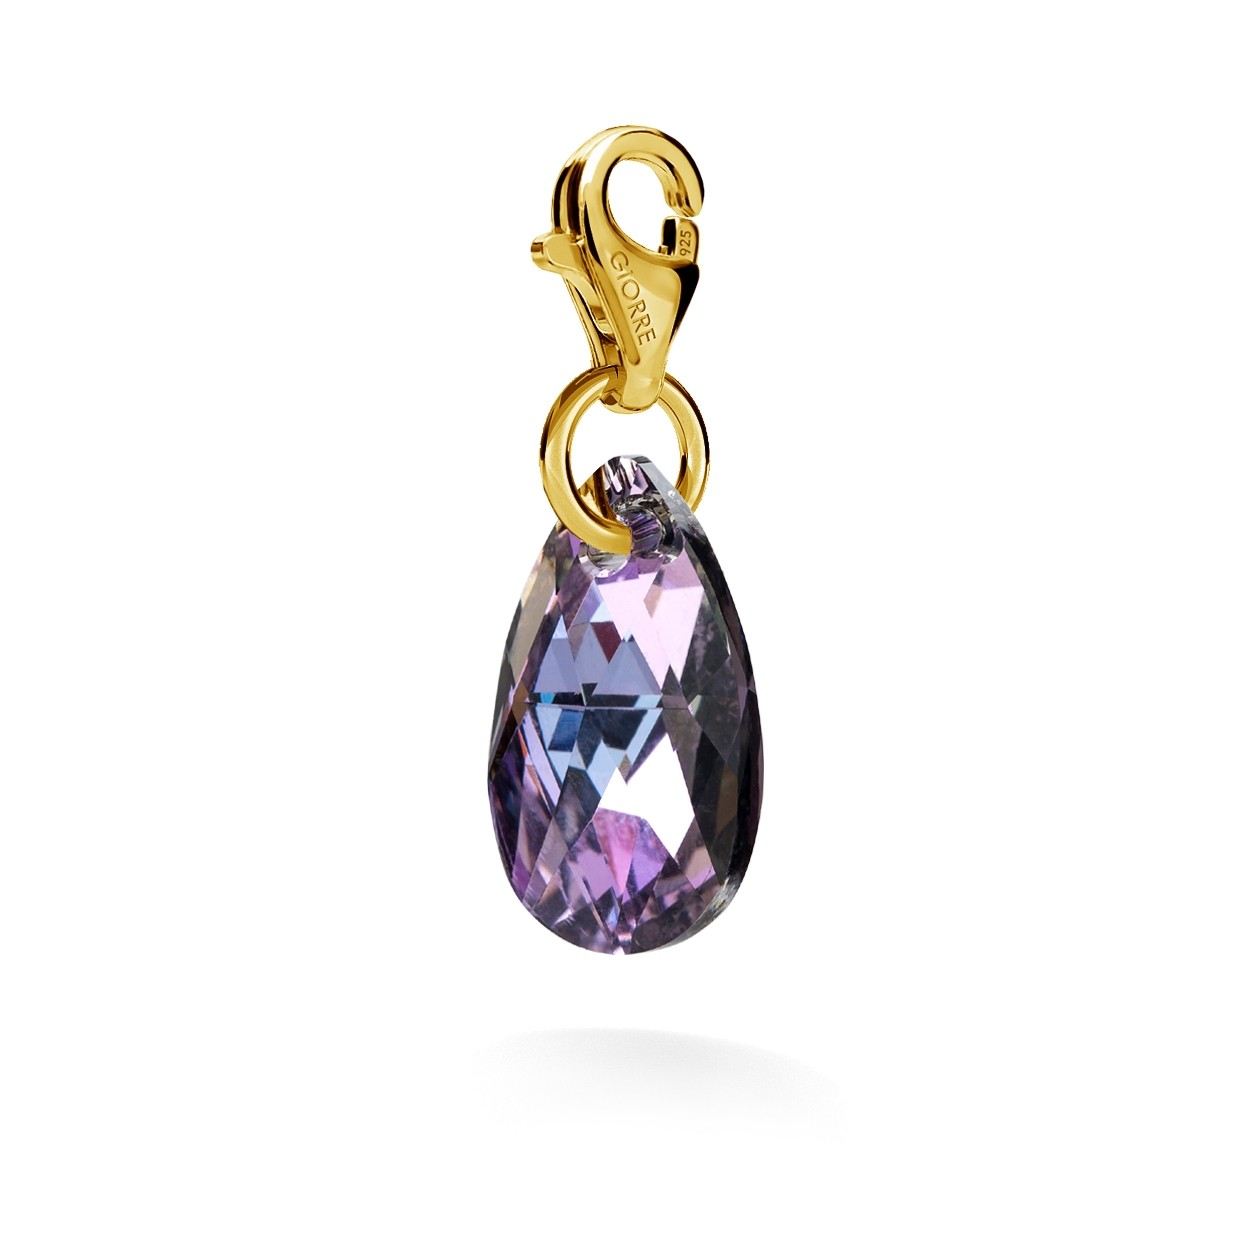 CHARM 54, SWAROVSKI 6106 MM 16 CRYSTAL, STERLING SILVER (925) RHODIUM OR GOLD PLATED